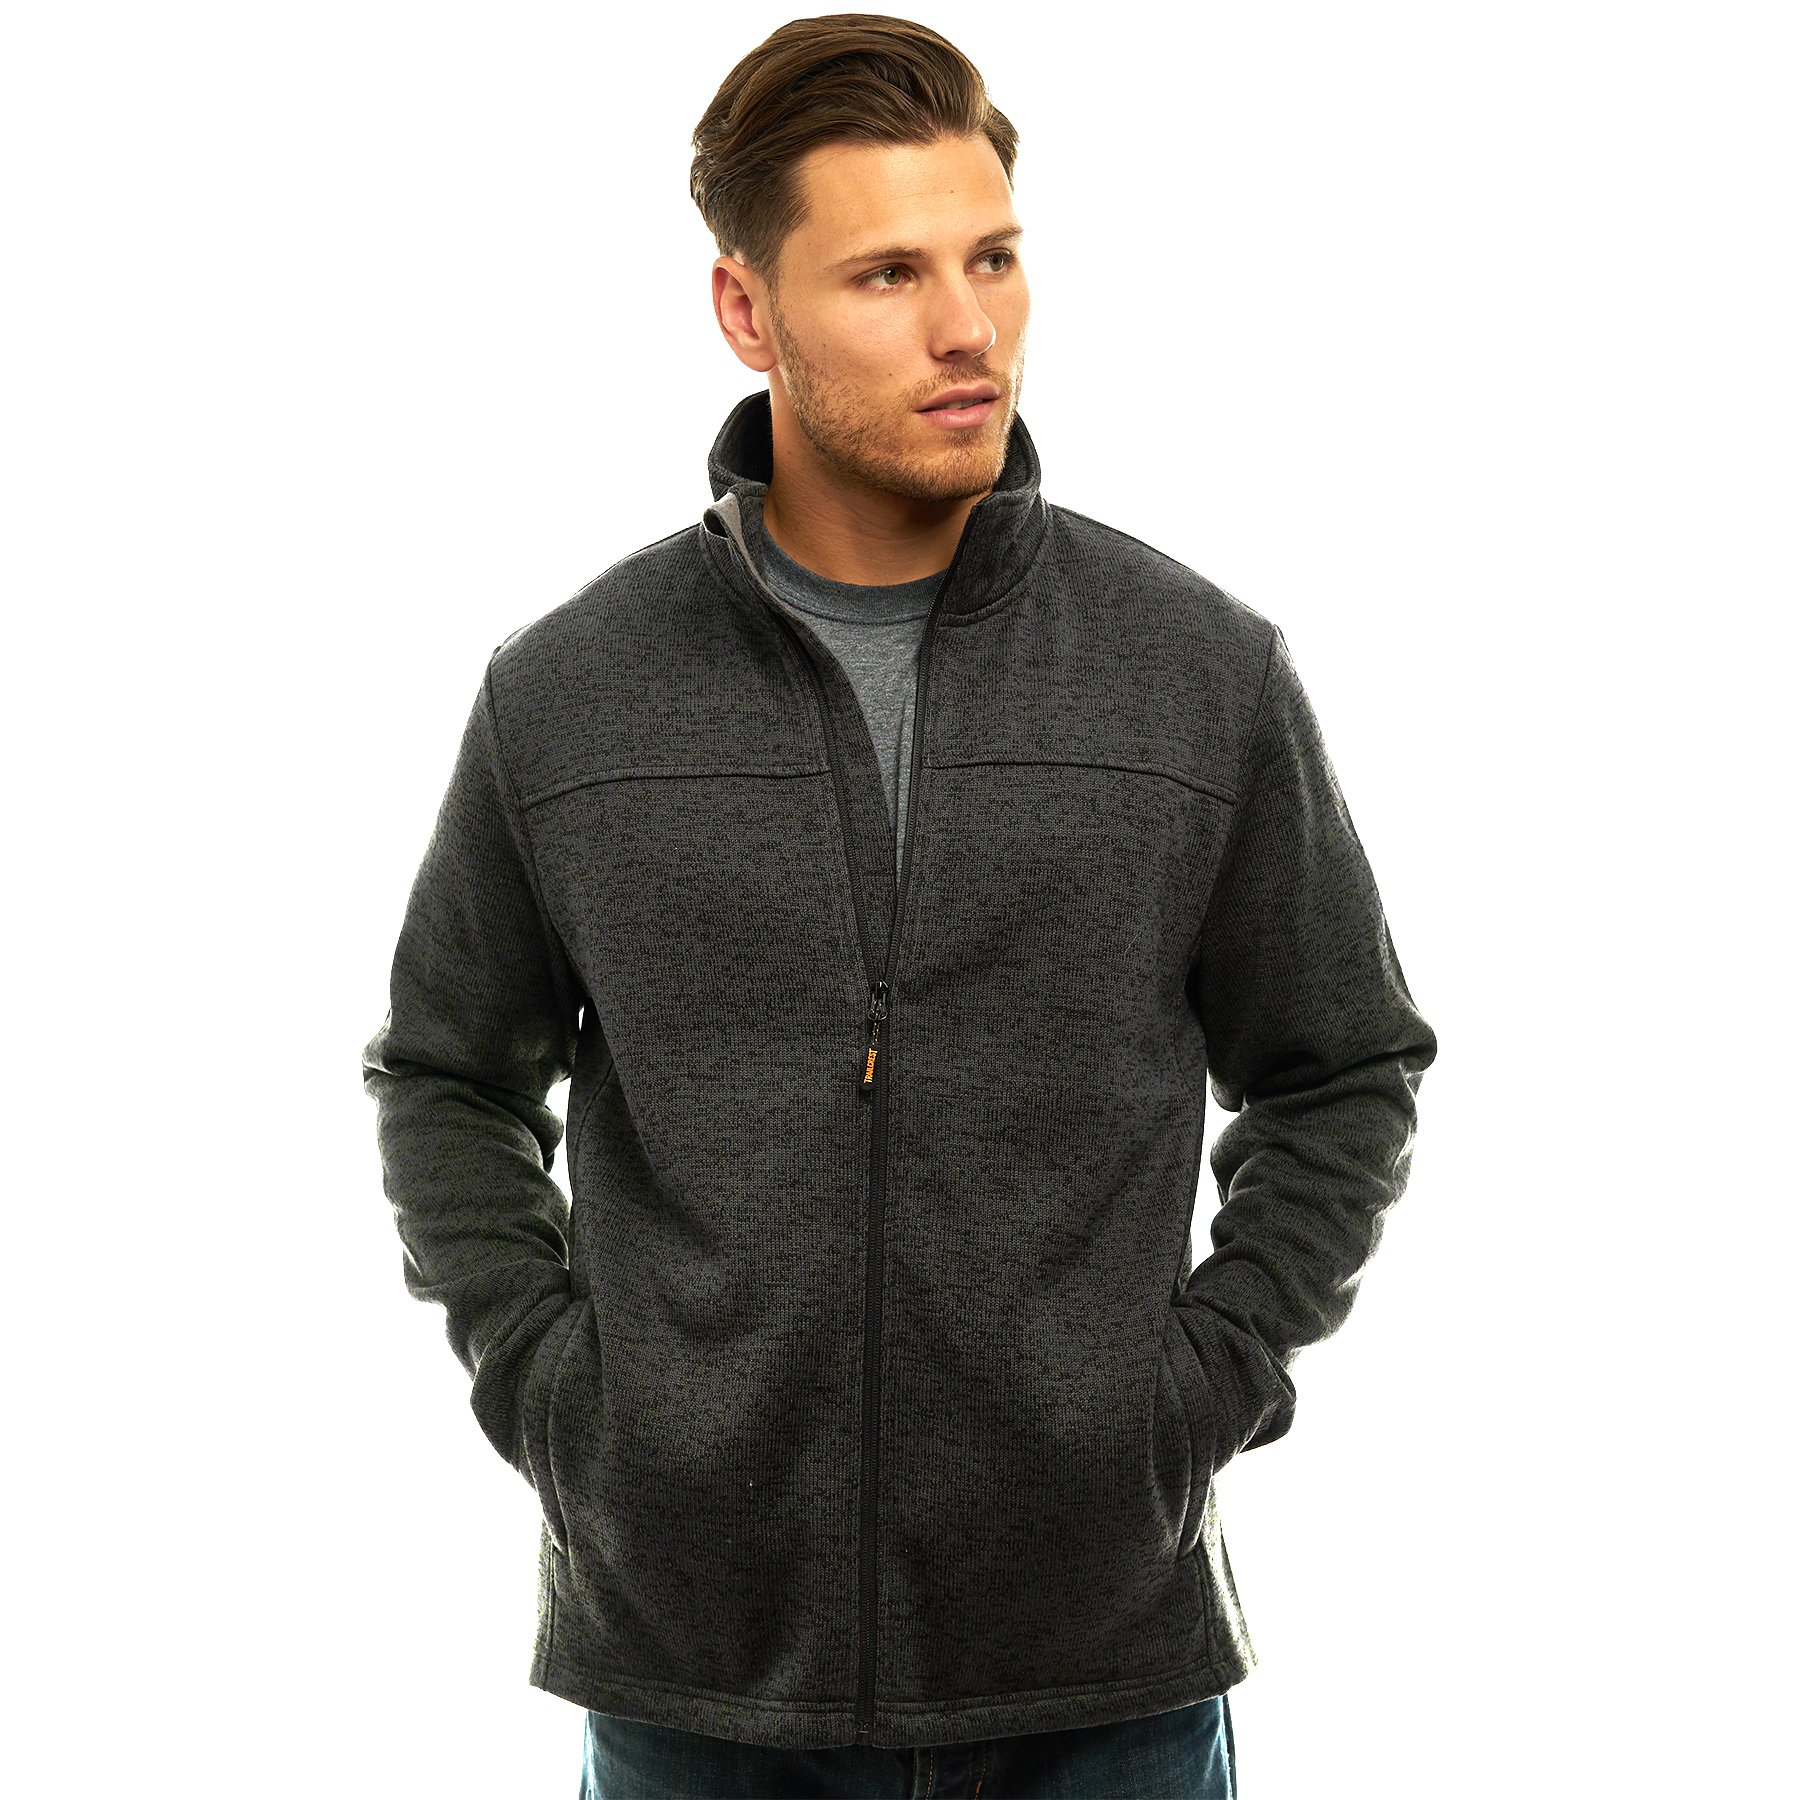 TrailCrest Mens Unique Speckled Zip Up Sweater Fleece-Heather Knit-Winter/Fall Classic Collection Charcoal Heather X-Large